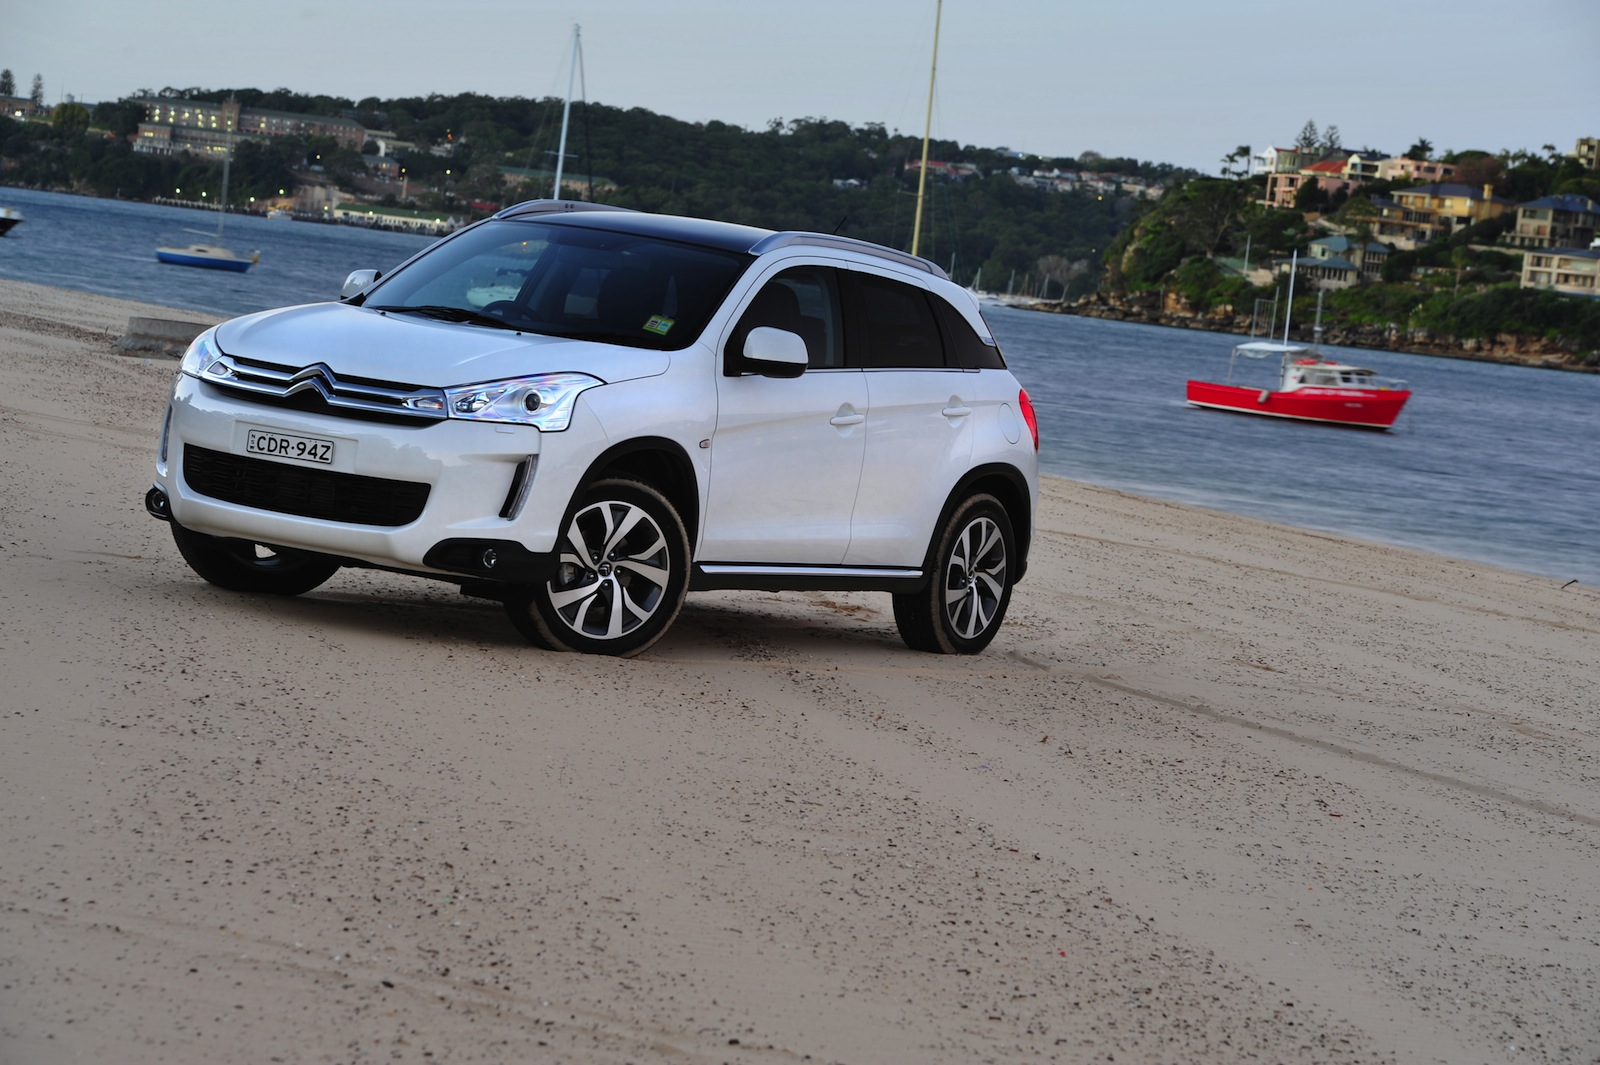 citroen c4 aircross review photos caradvice. Black Bedroom Furniture Sets. Home Design Ideas